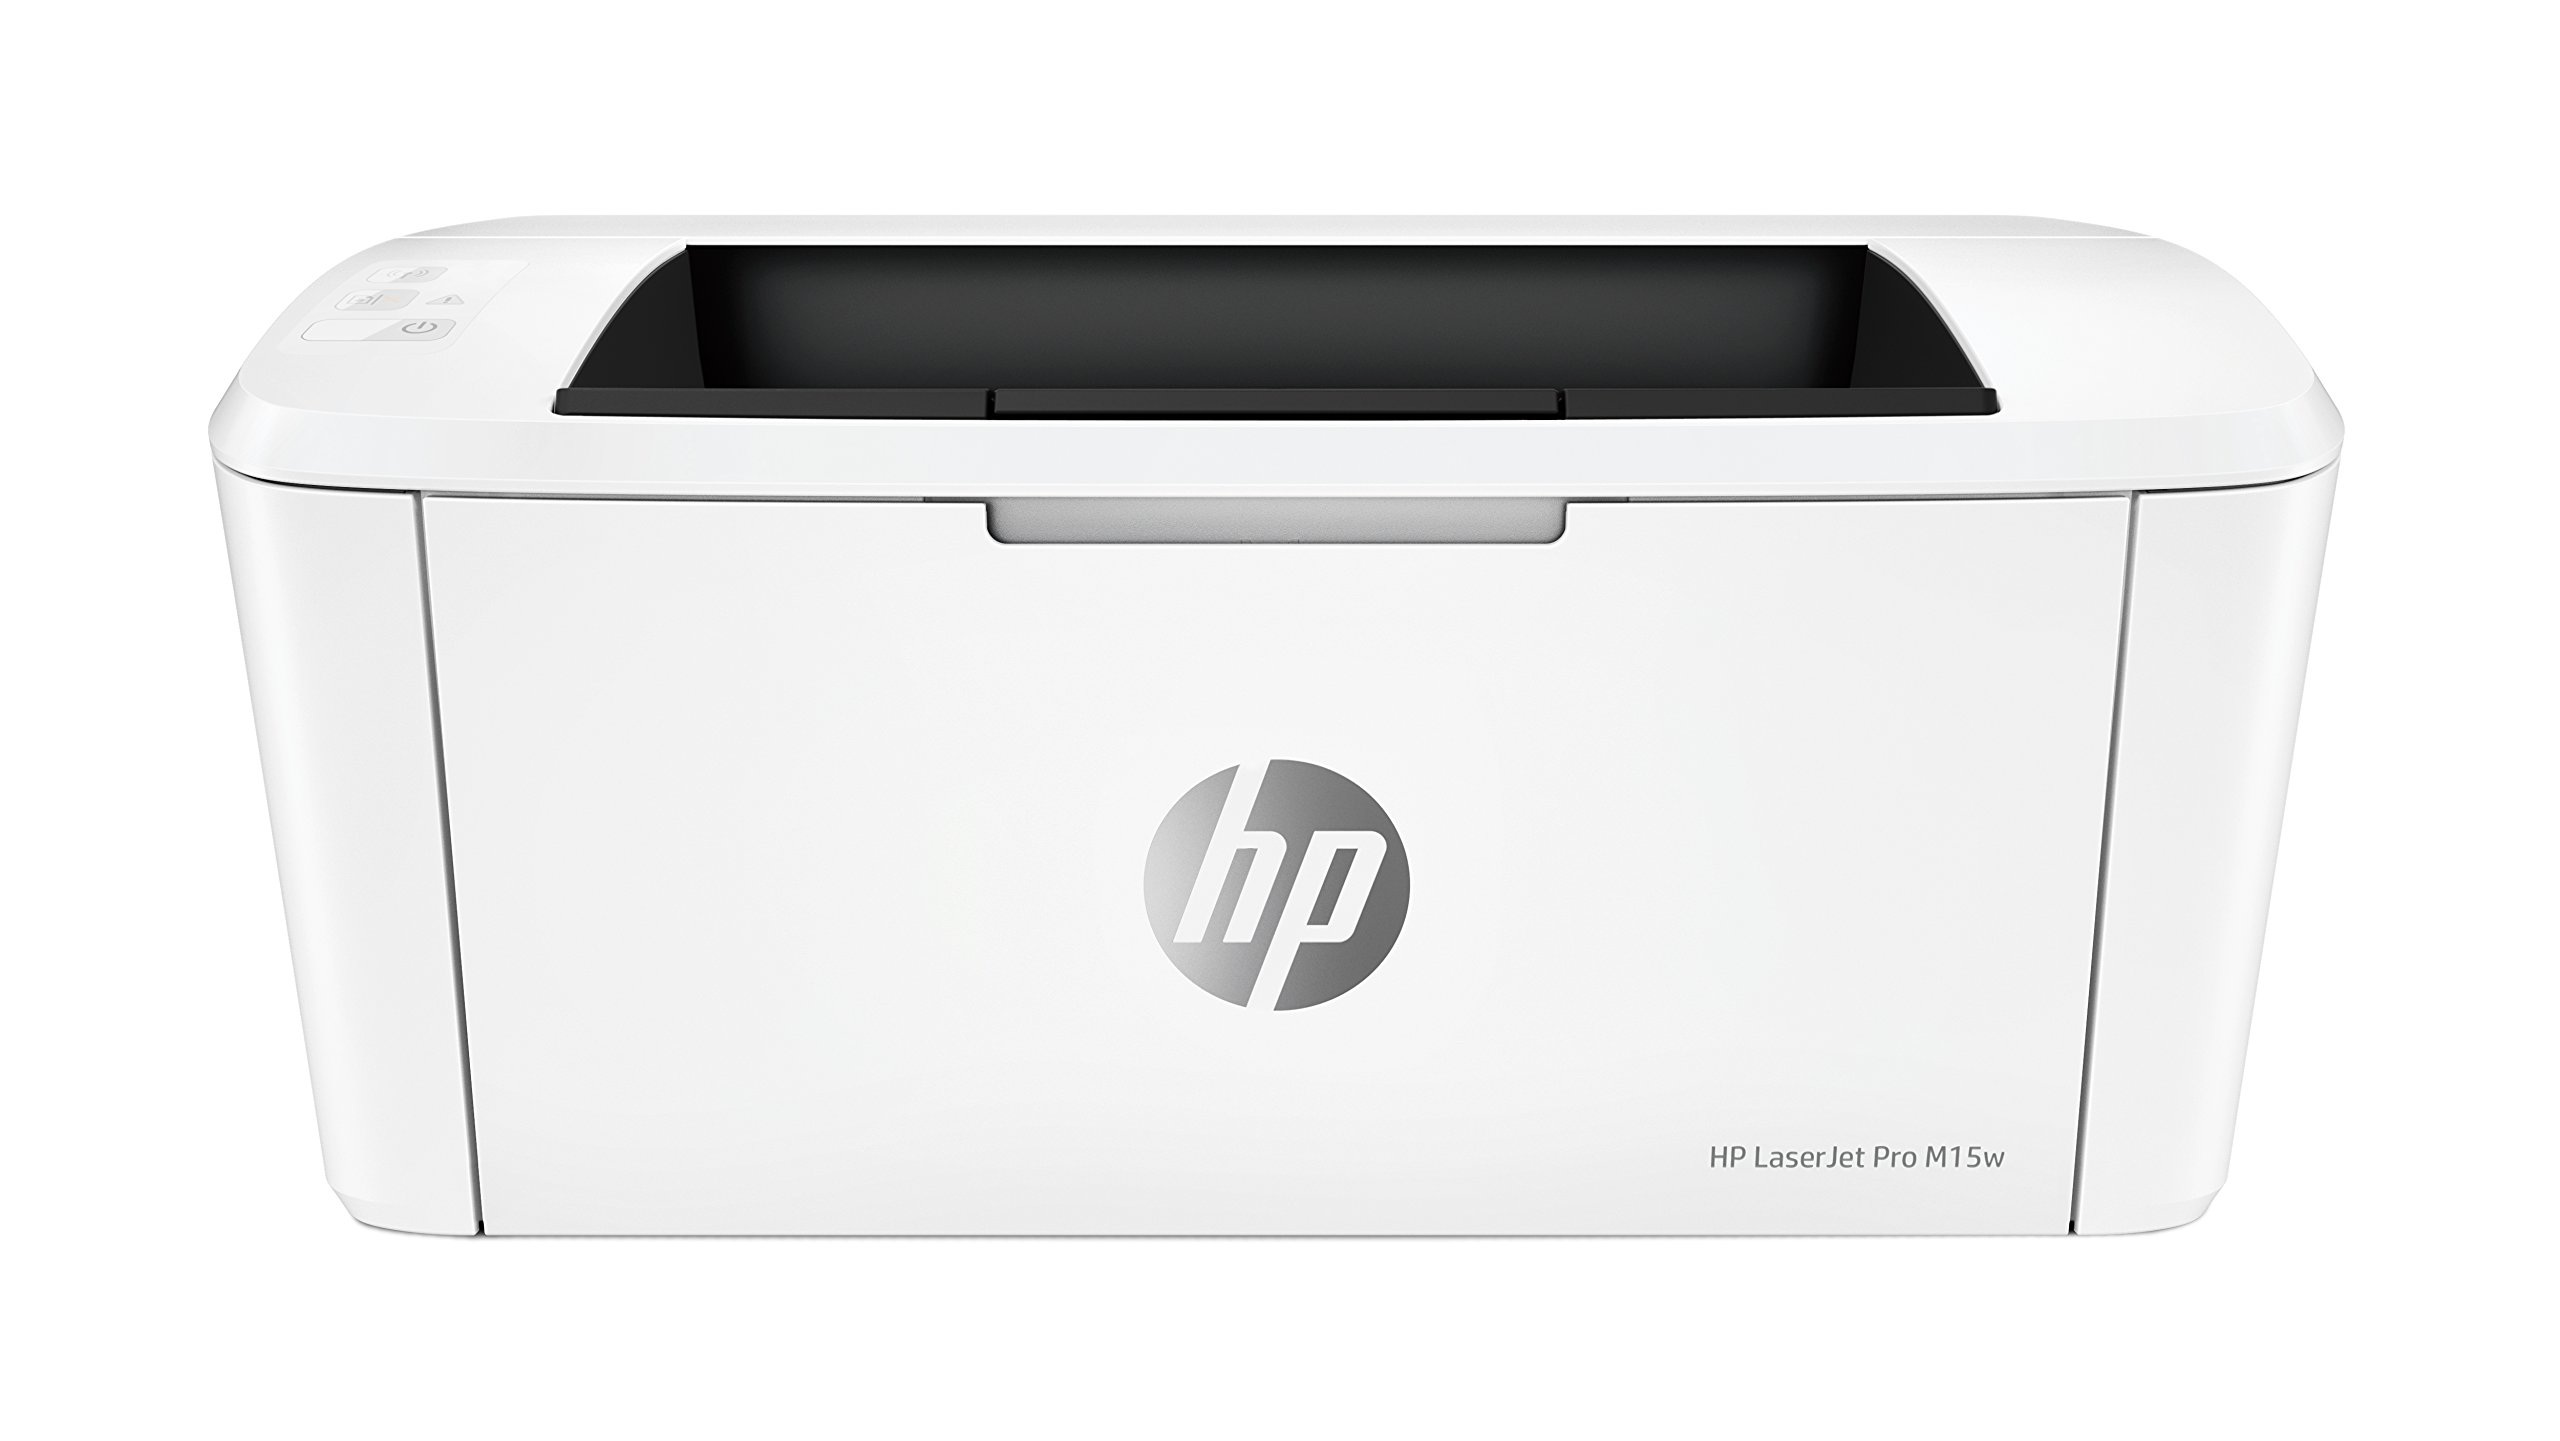 HP LaserJet Pro M15w Wireless Laser Printer (W2G51A) by HP